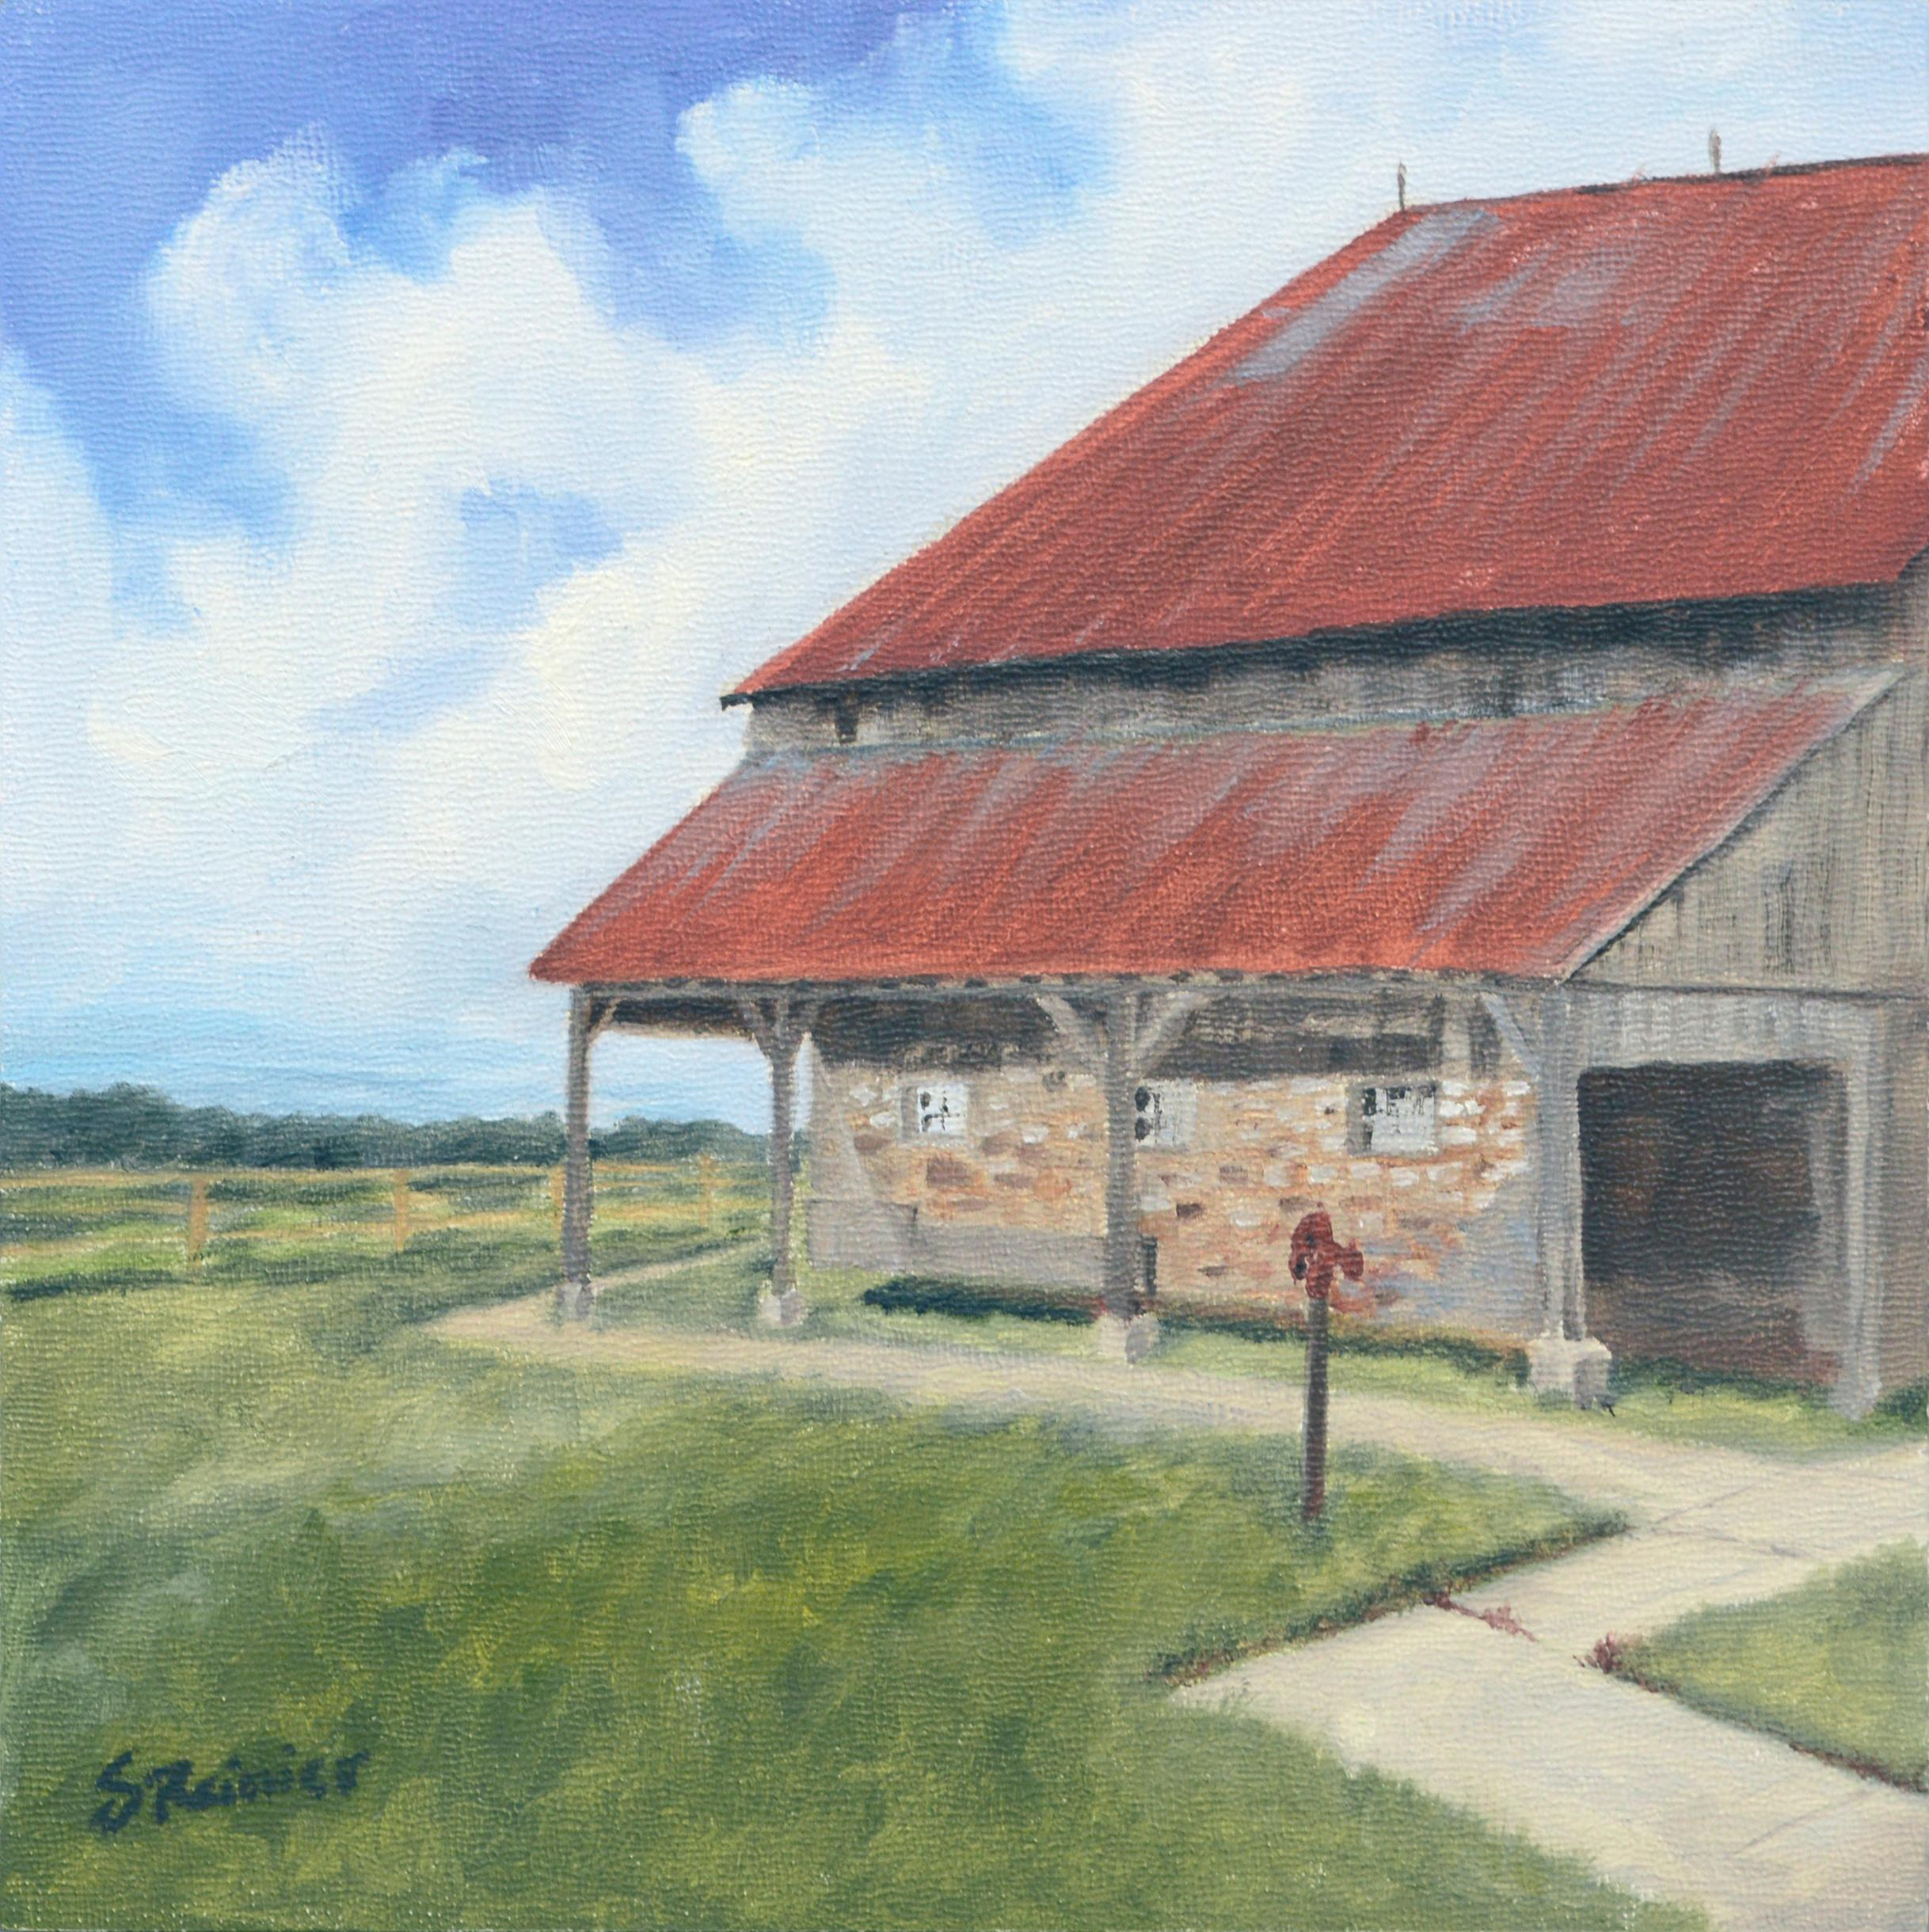 Barn with a Red Roof - Landscape